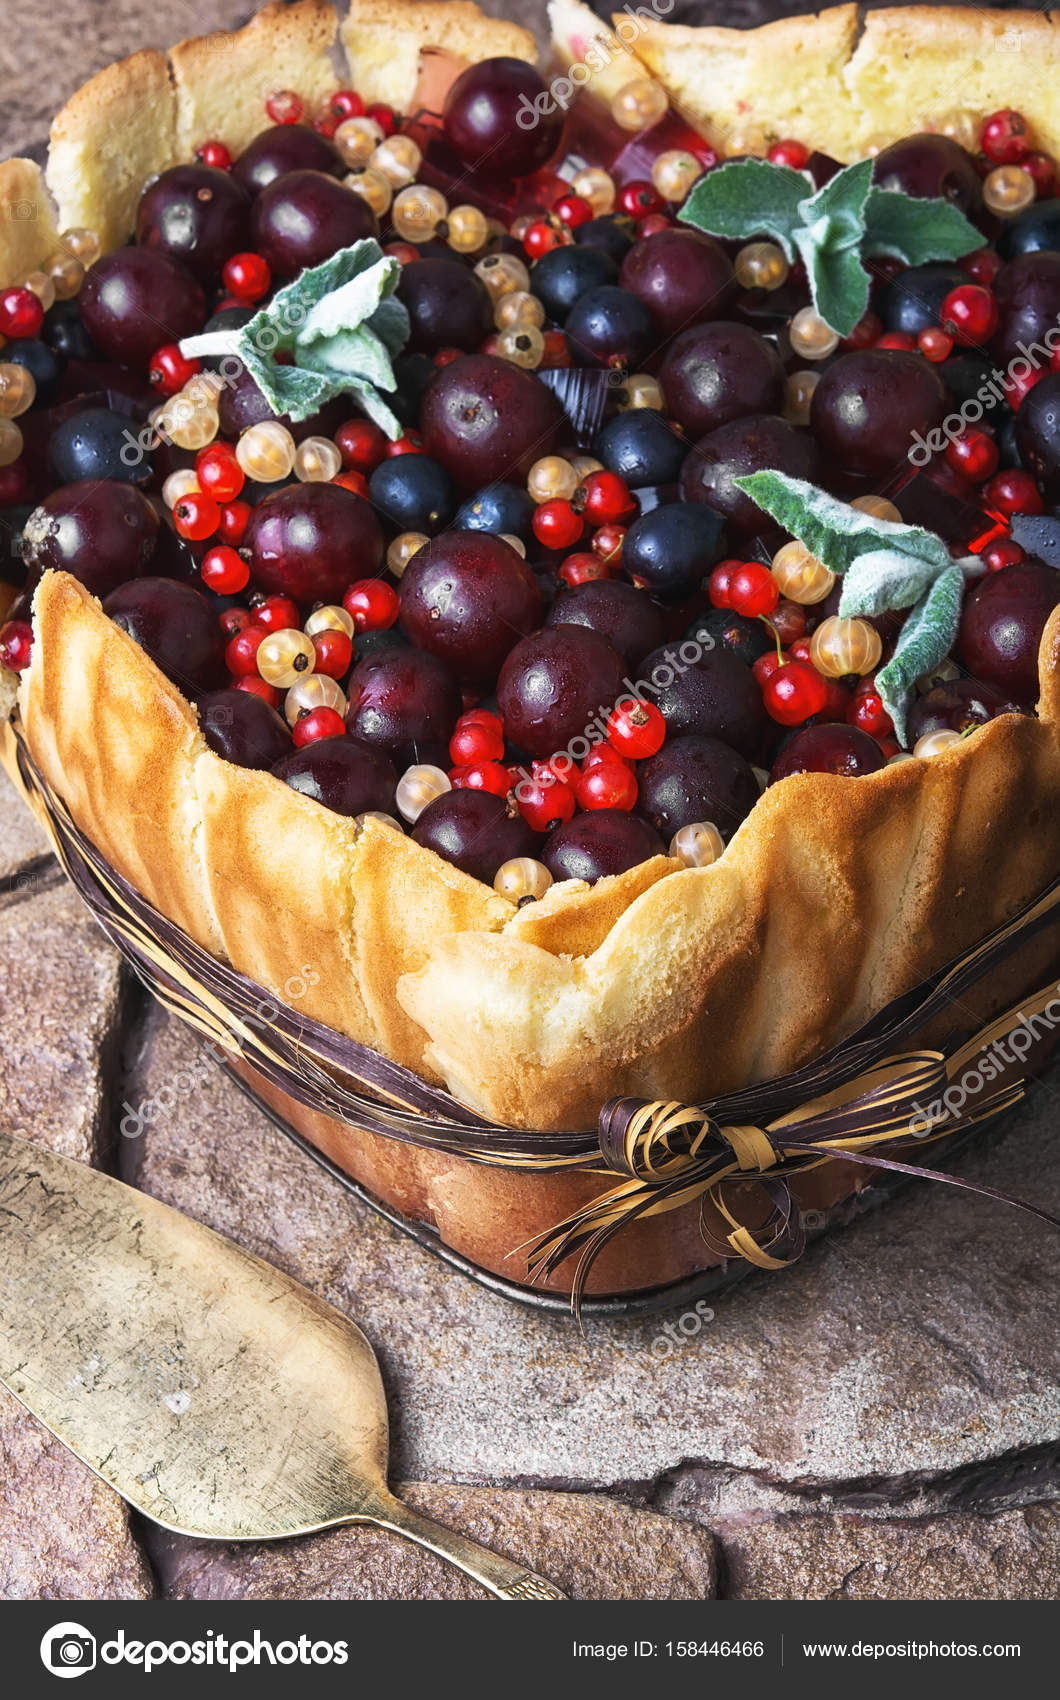 Delicious Rustic Berry Summer Pie With Cherry Currant Raspberry Filling Photo By Nikolay Donetsk